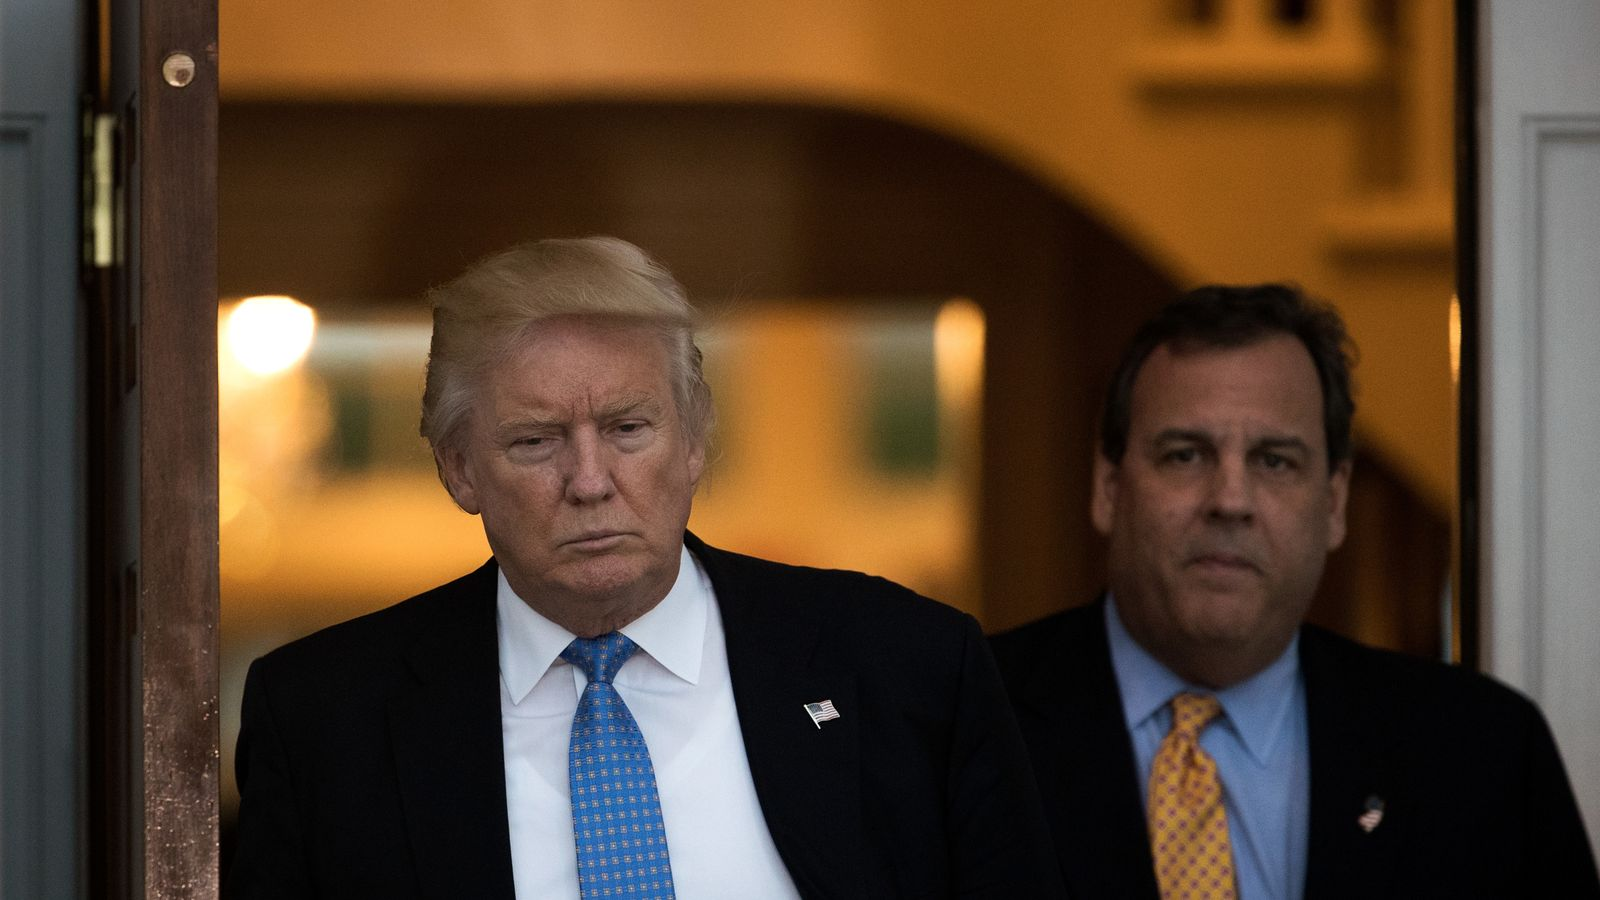 Chris Christie pulls out of the running for Trump's new chief of staff